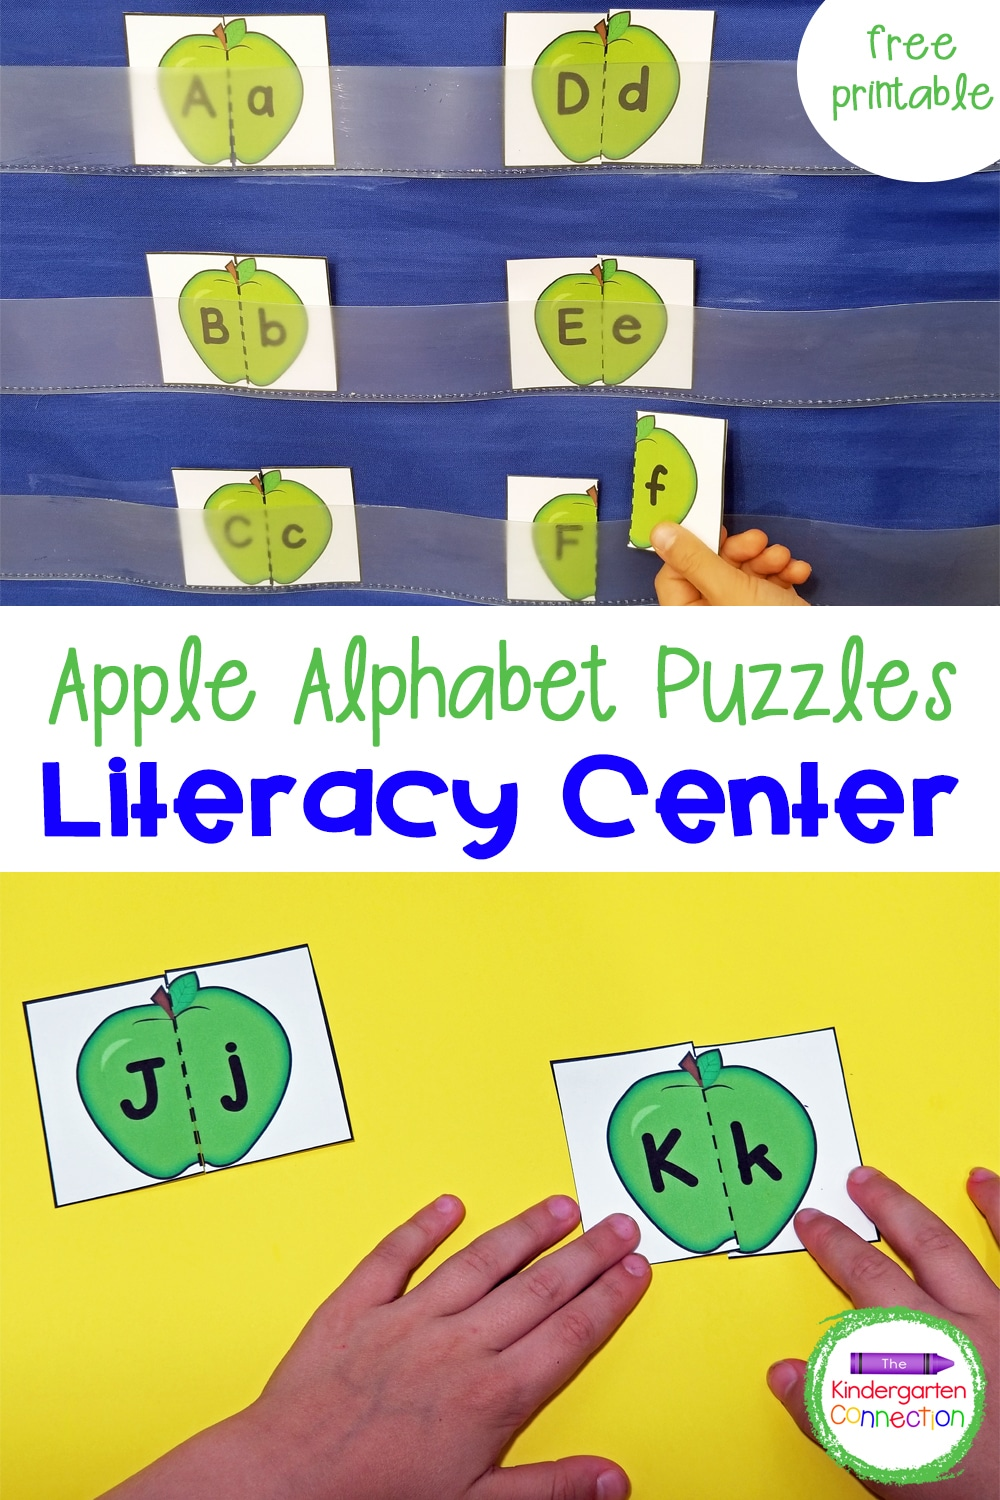 These free Apple Alphabet Puzzles are a great literacy center for preschoolers or kindergarteners to practice their ABC's this fall!